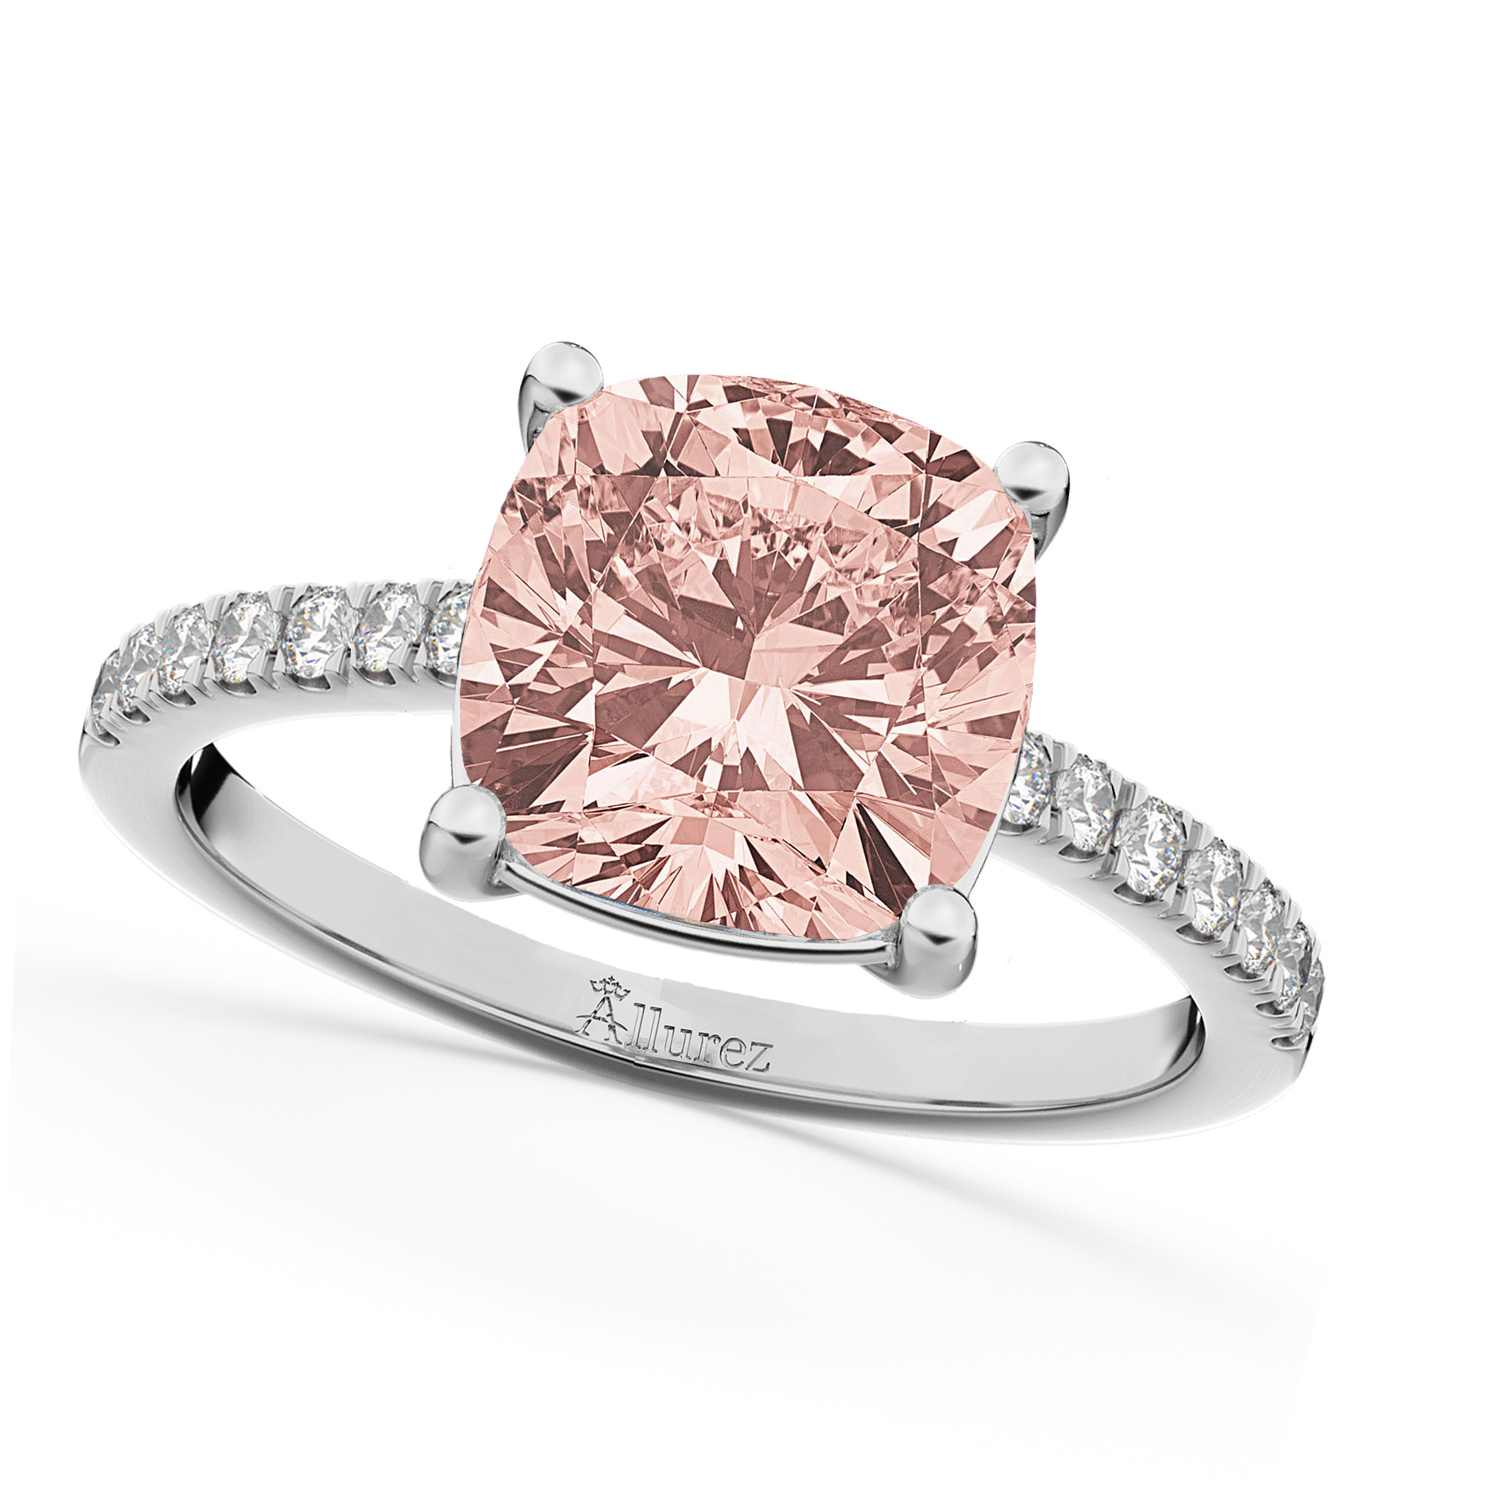 Cushion Cut Morganite & Diamond Engagement Ring 14k White Gold 2.81ct